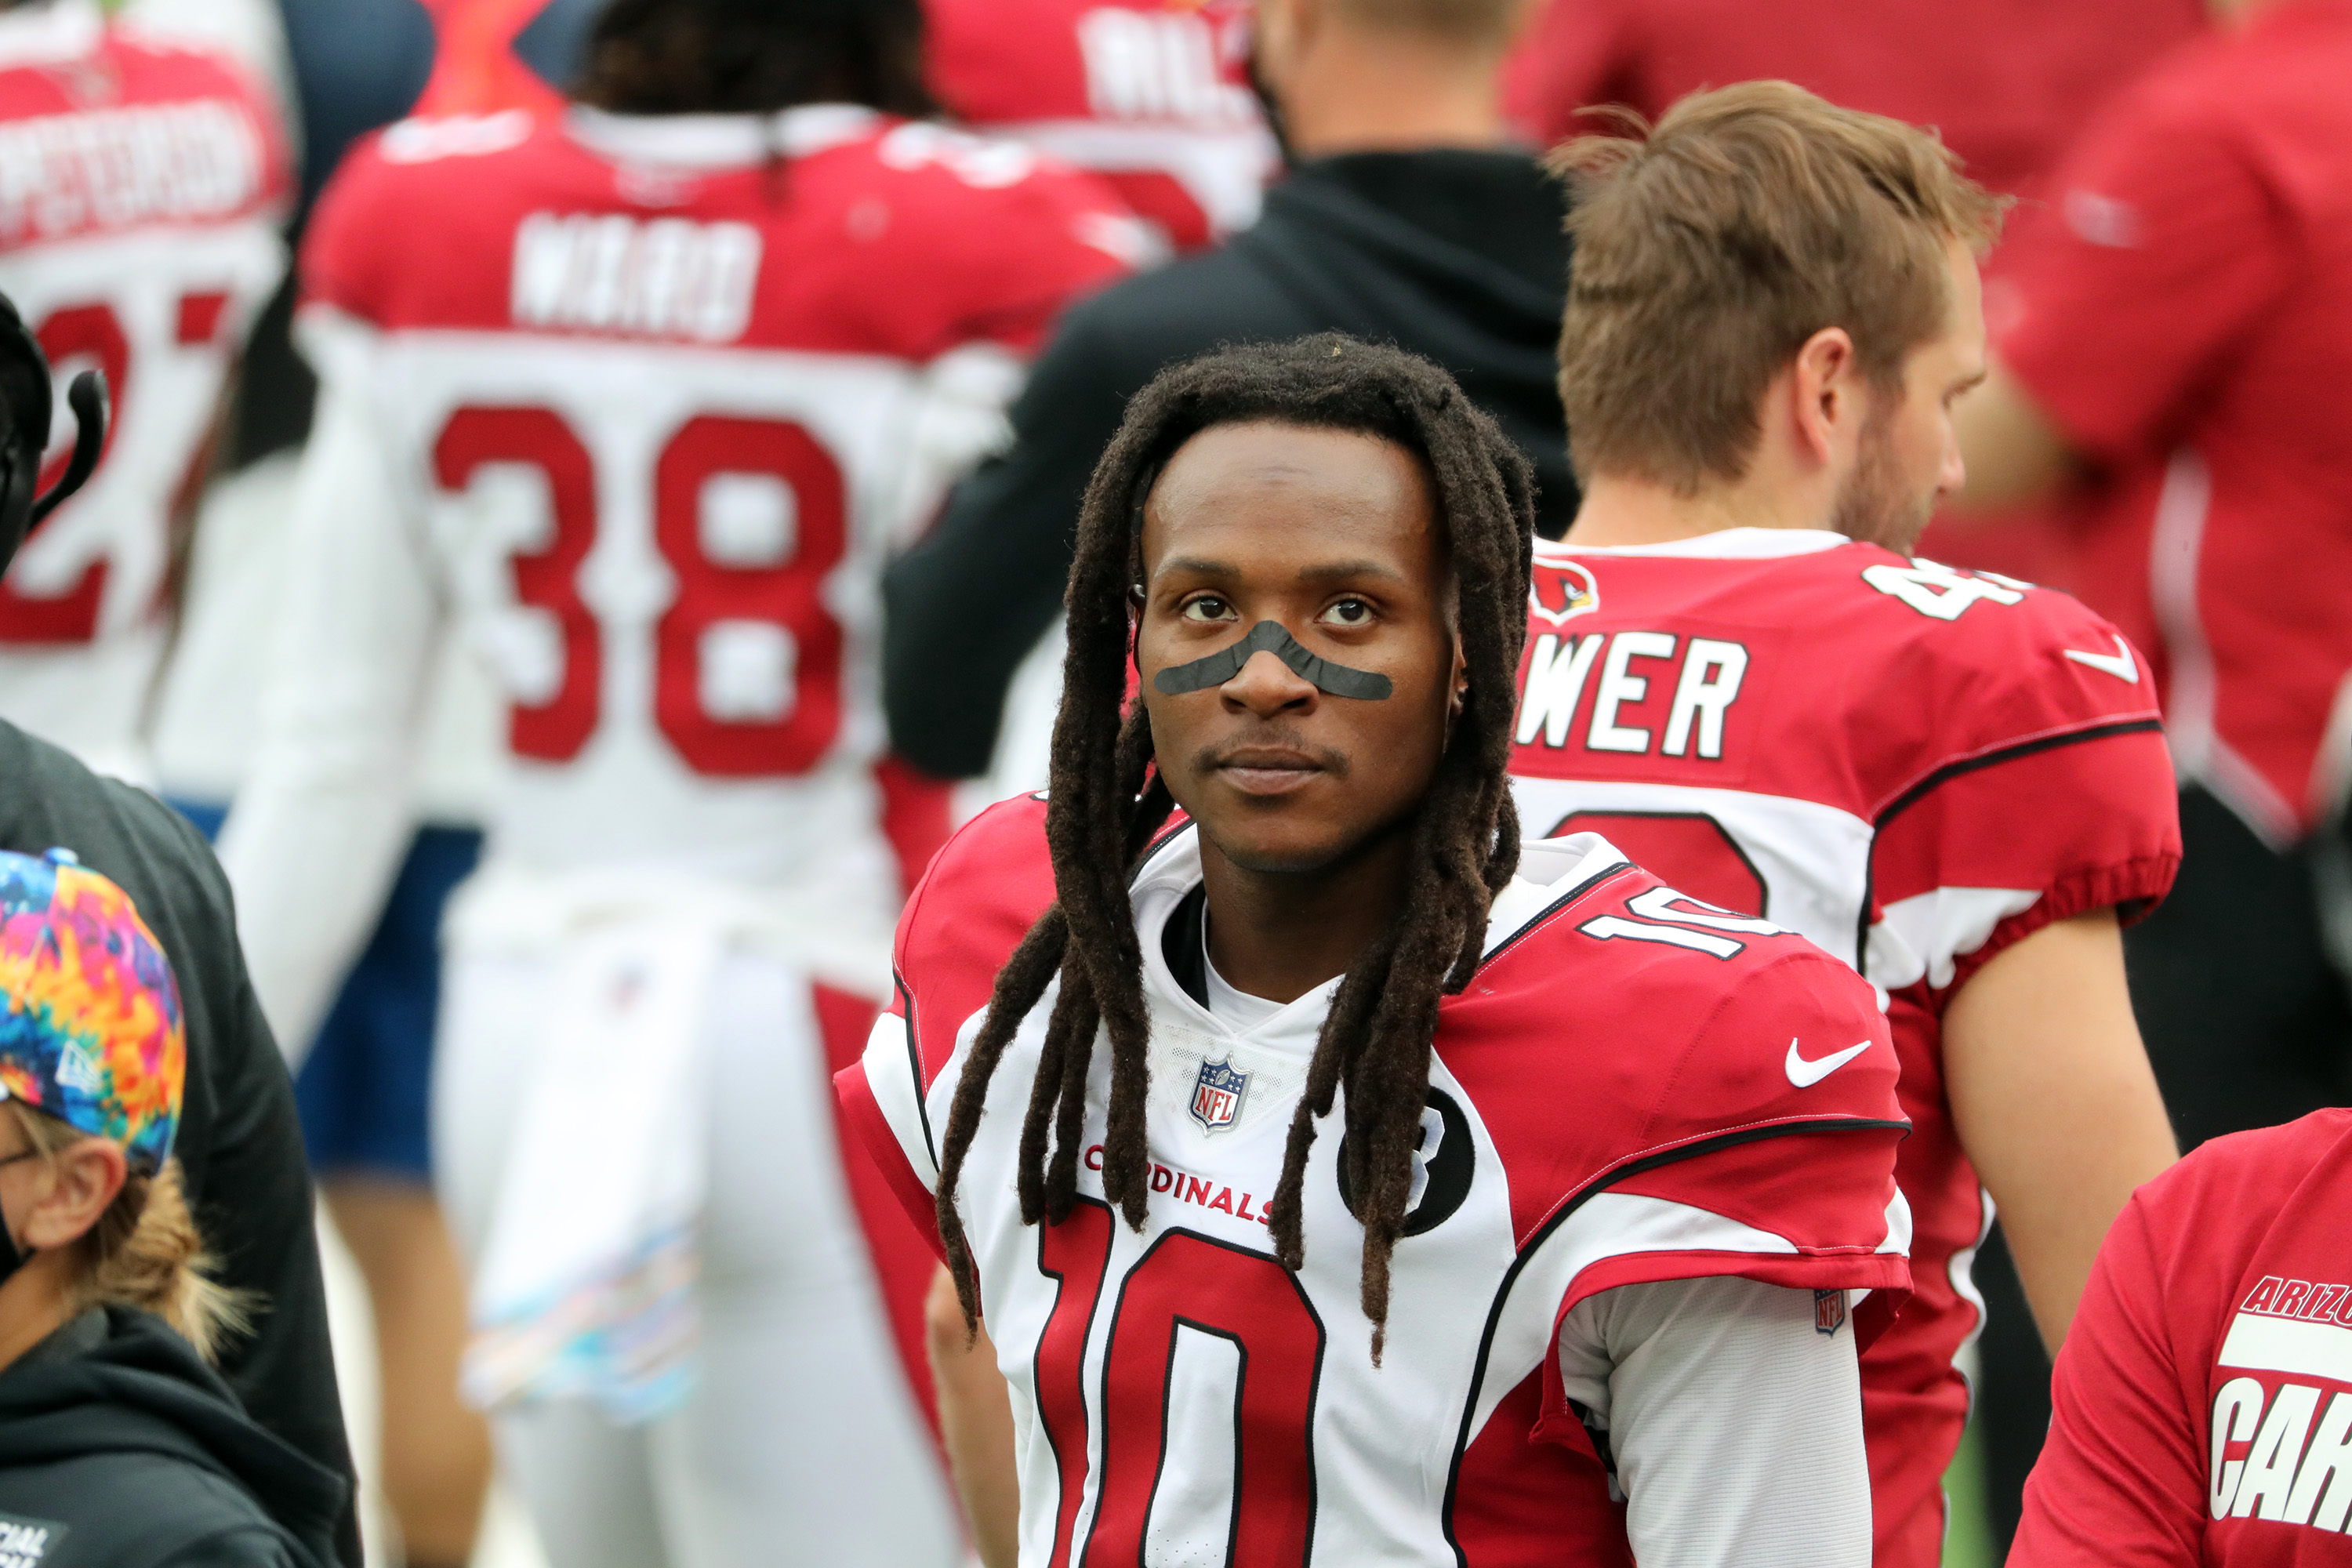 DeAndre Hopkins looks on from the sideline during a game